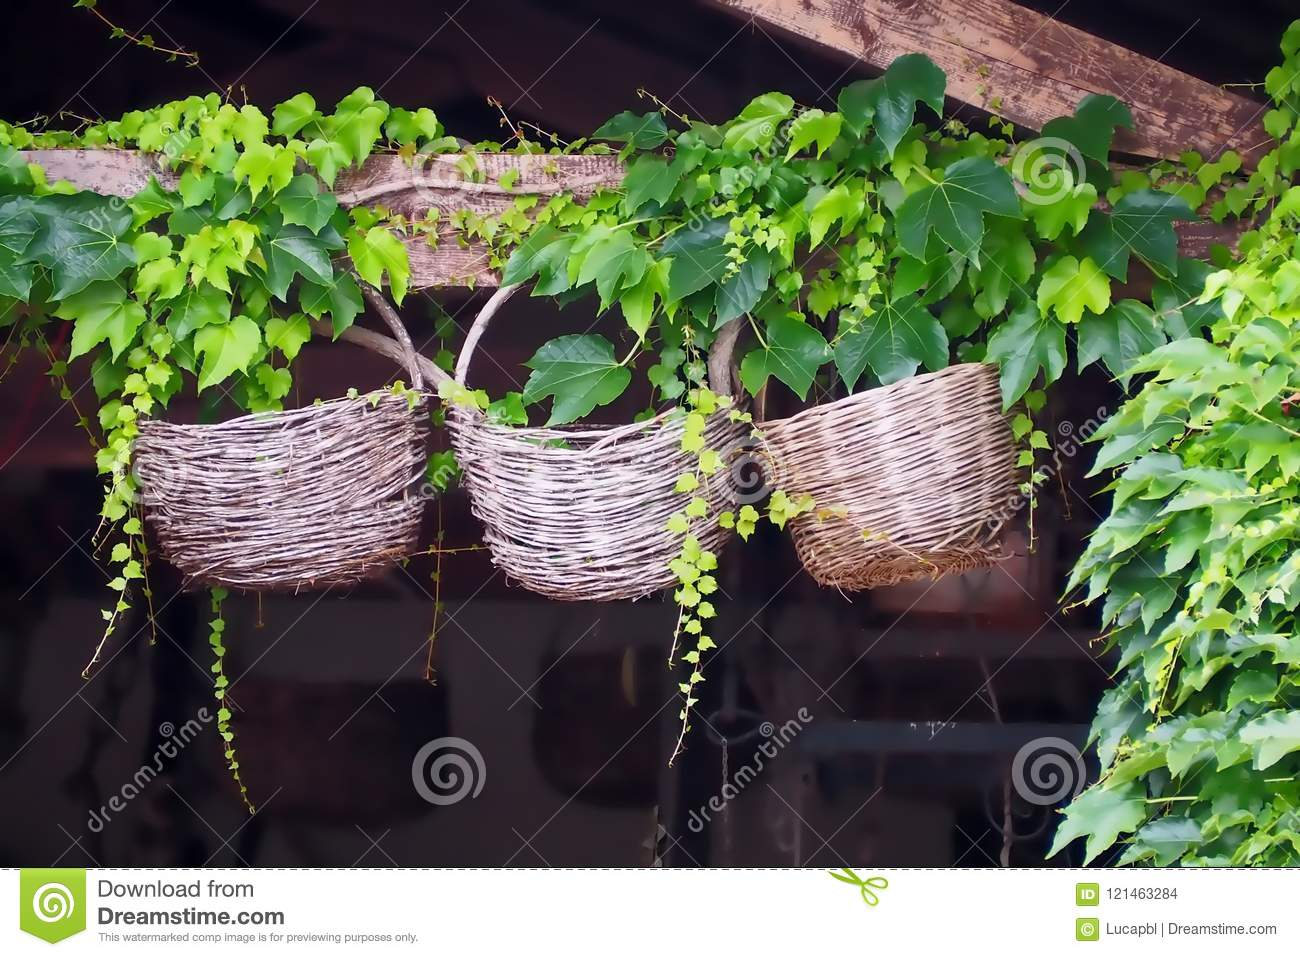 Three old used decorative round wicker baskets, hung on a wooden beam with ivy around